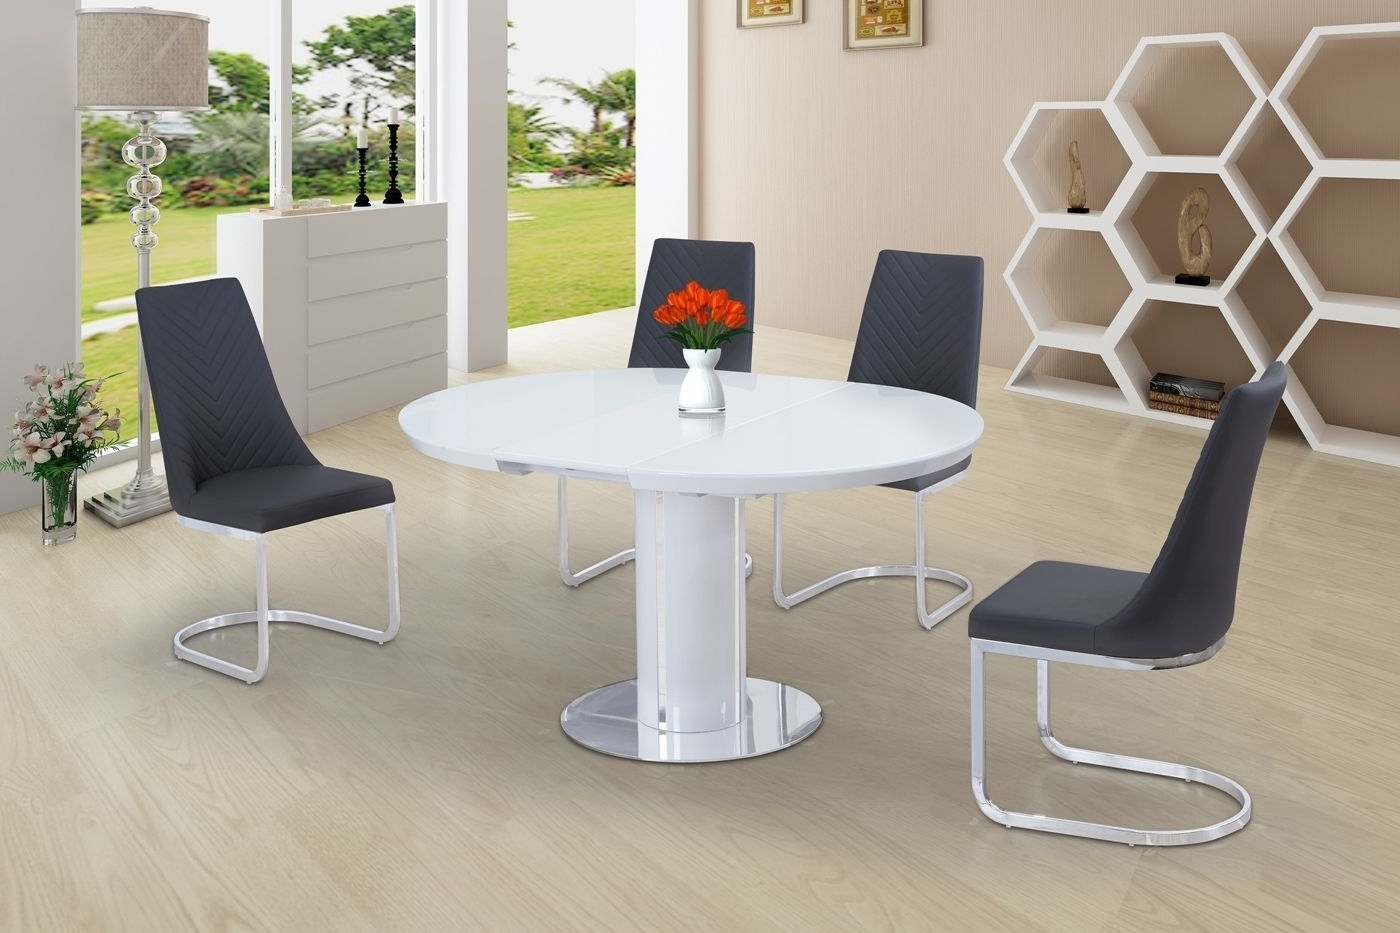 Fashionable Eclipse Round Oval Gloss & Glass Extending 110 To 145 Cm Dining Within Round Dining Tables Extends To Oval (View 9 of 25)